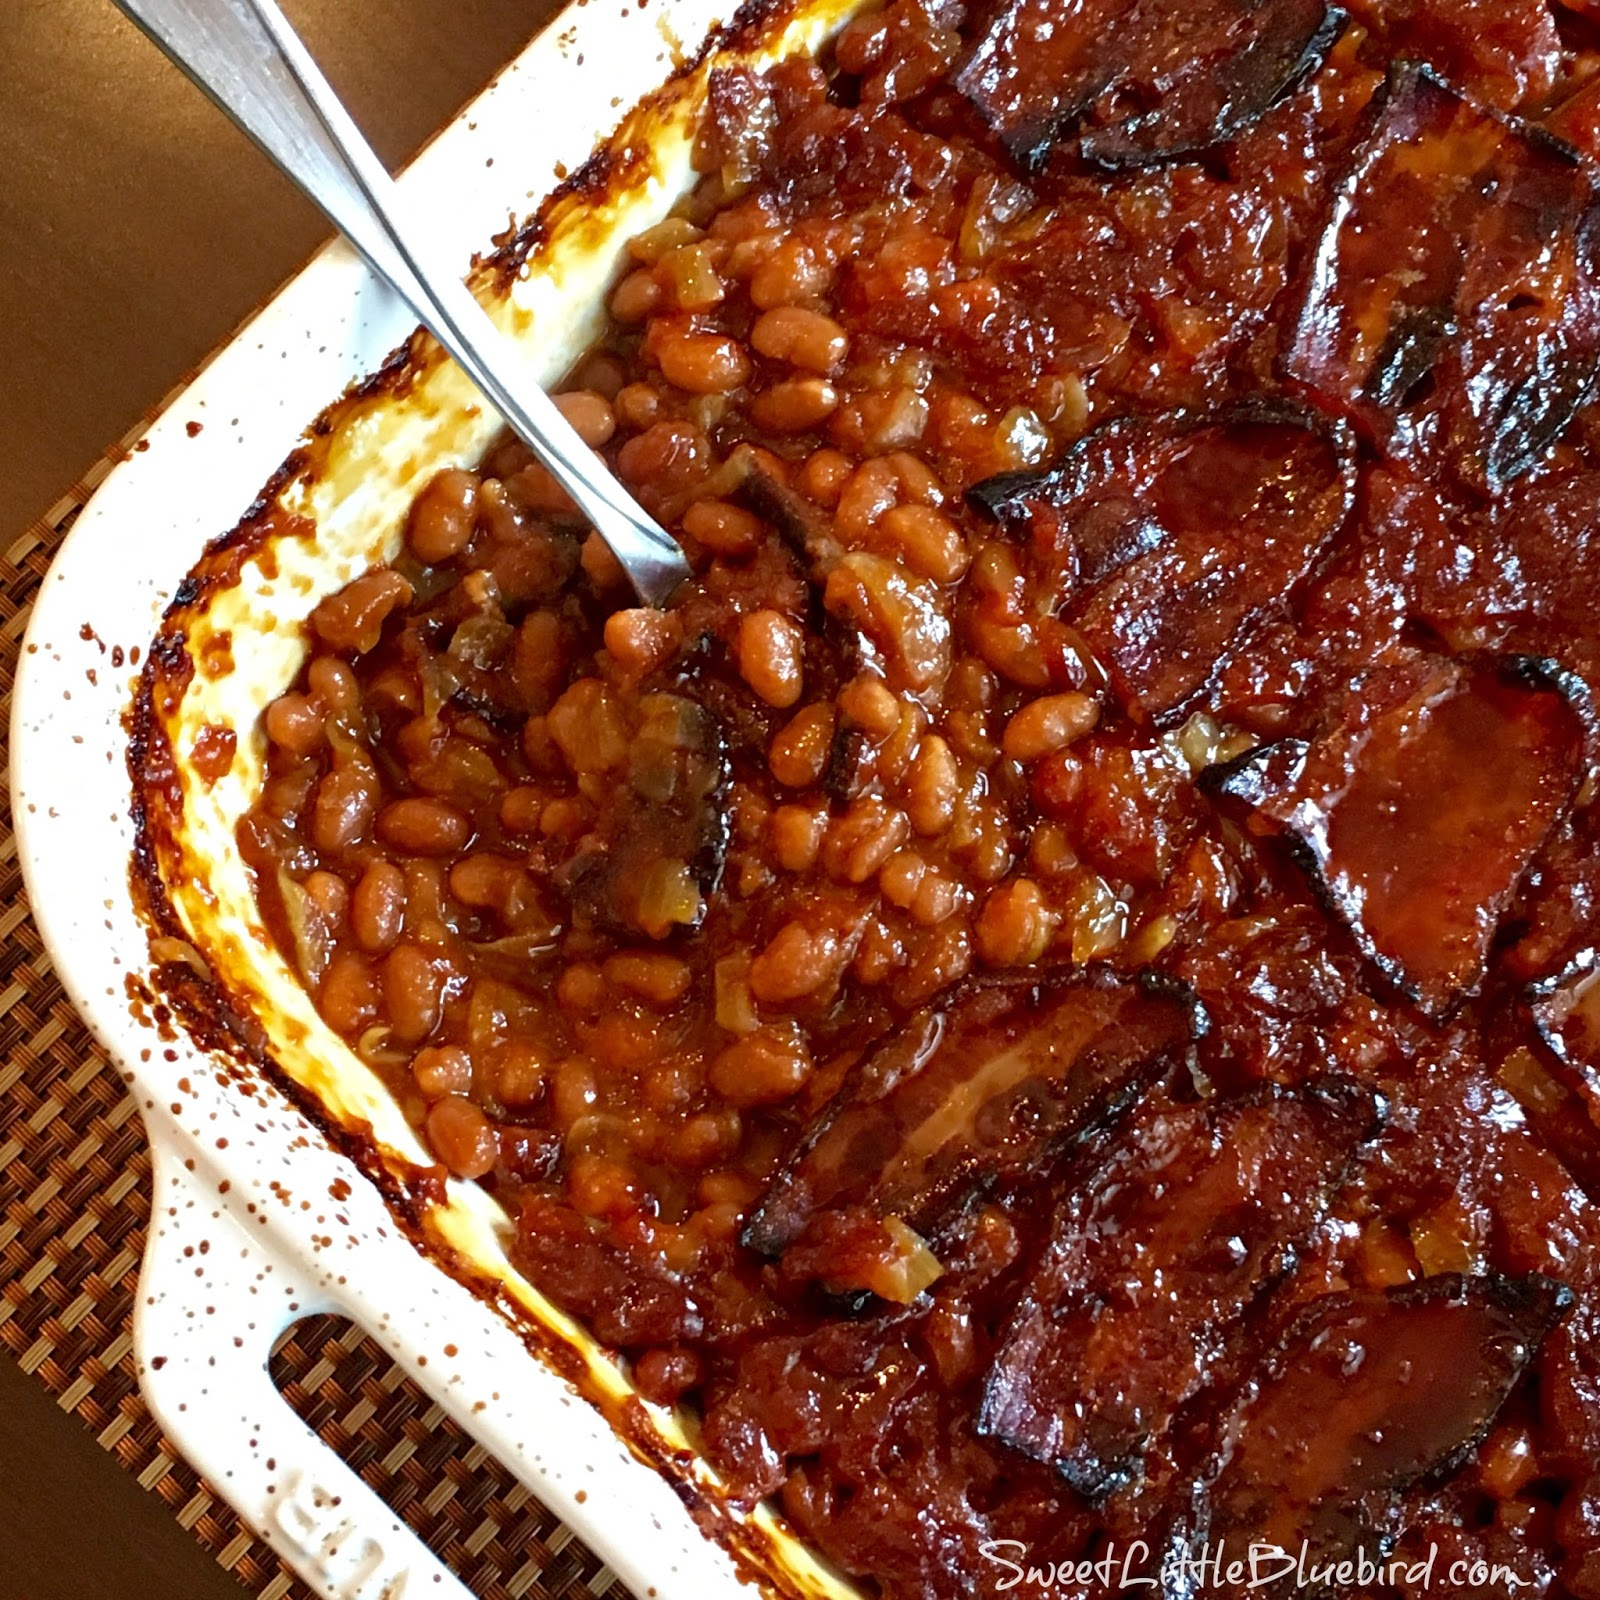 Anastasia's Best-Ever Baked Beans - Sweet Little Bluebird